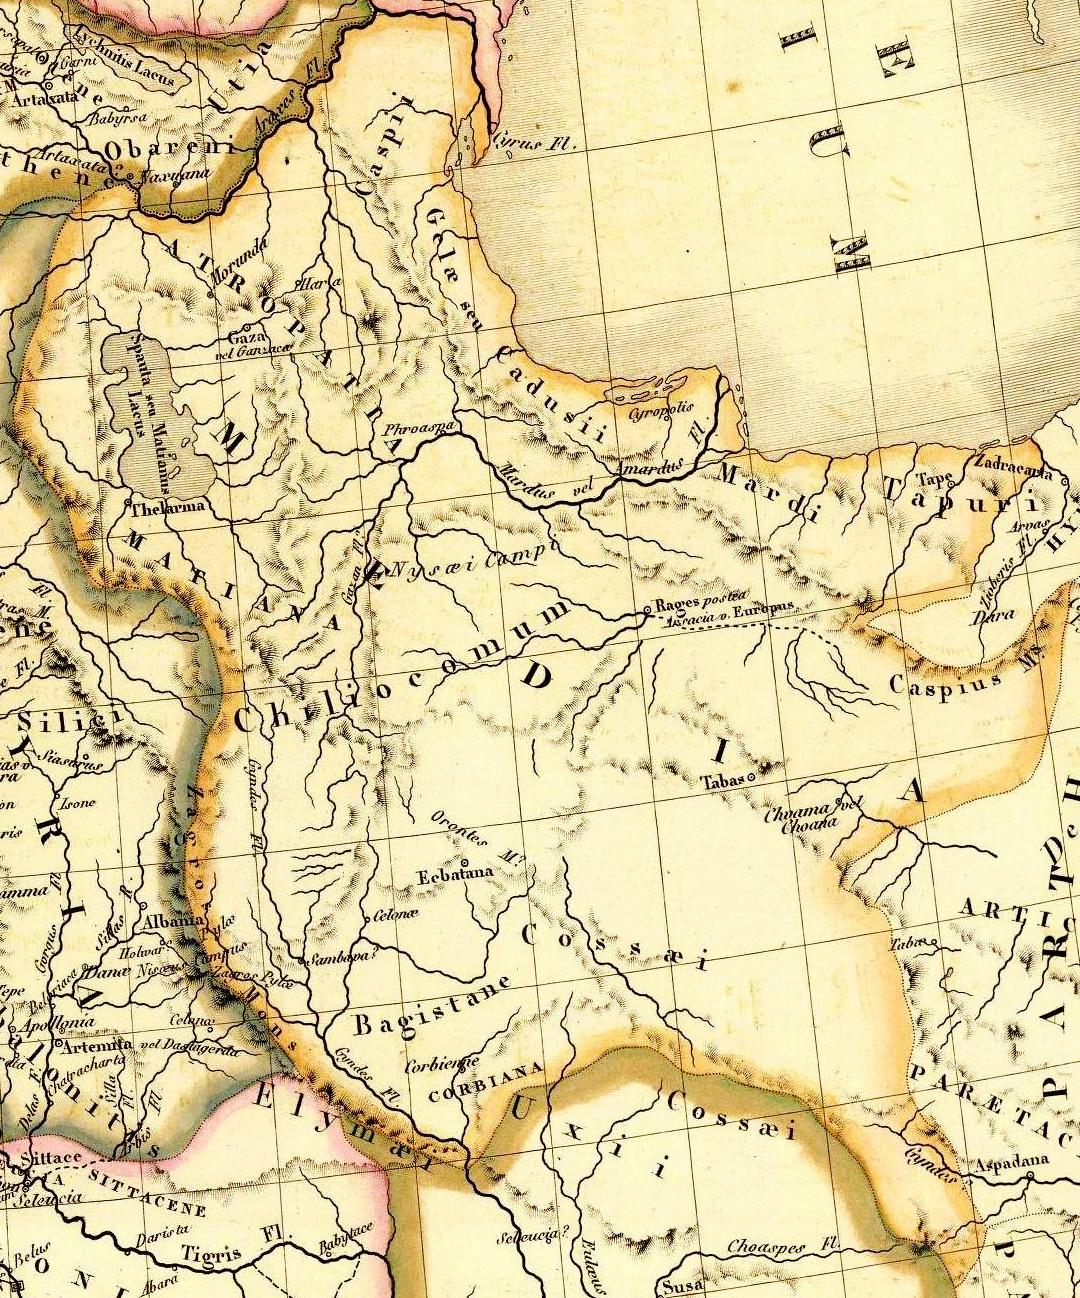 East Azerbaidjan in the past, History of East Azerbaidjan